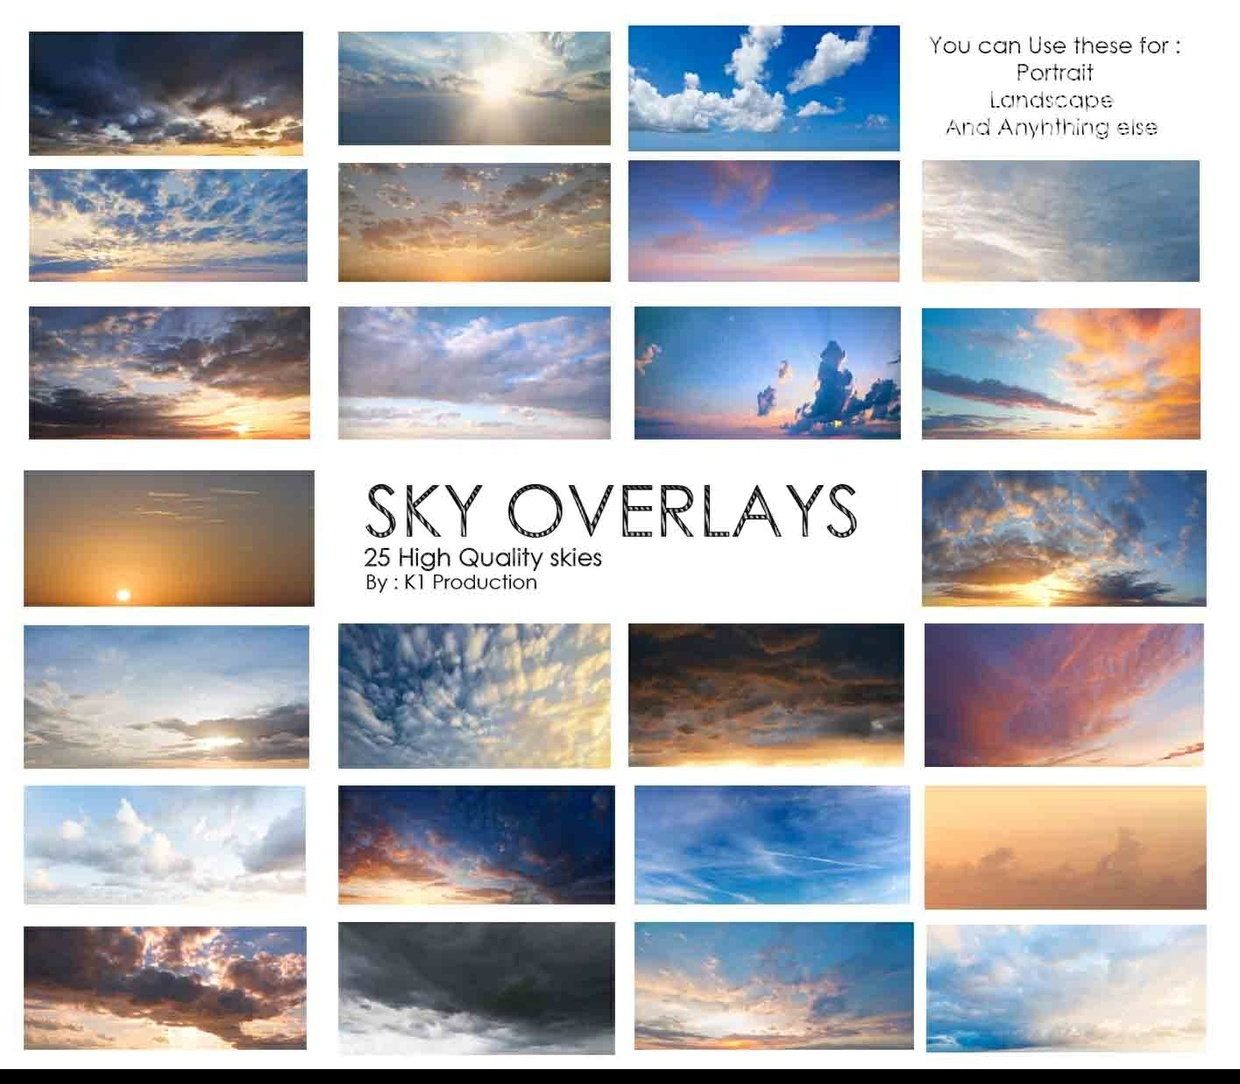 Sky Overlays Package